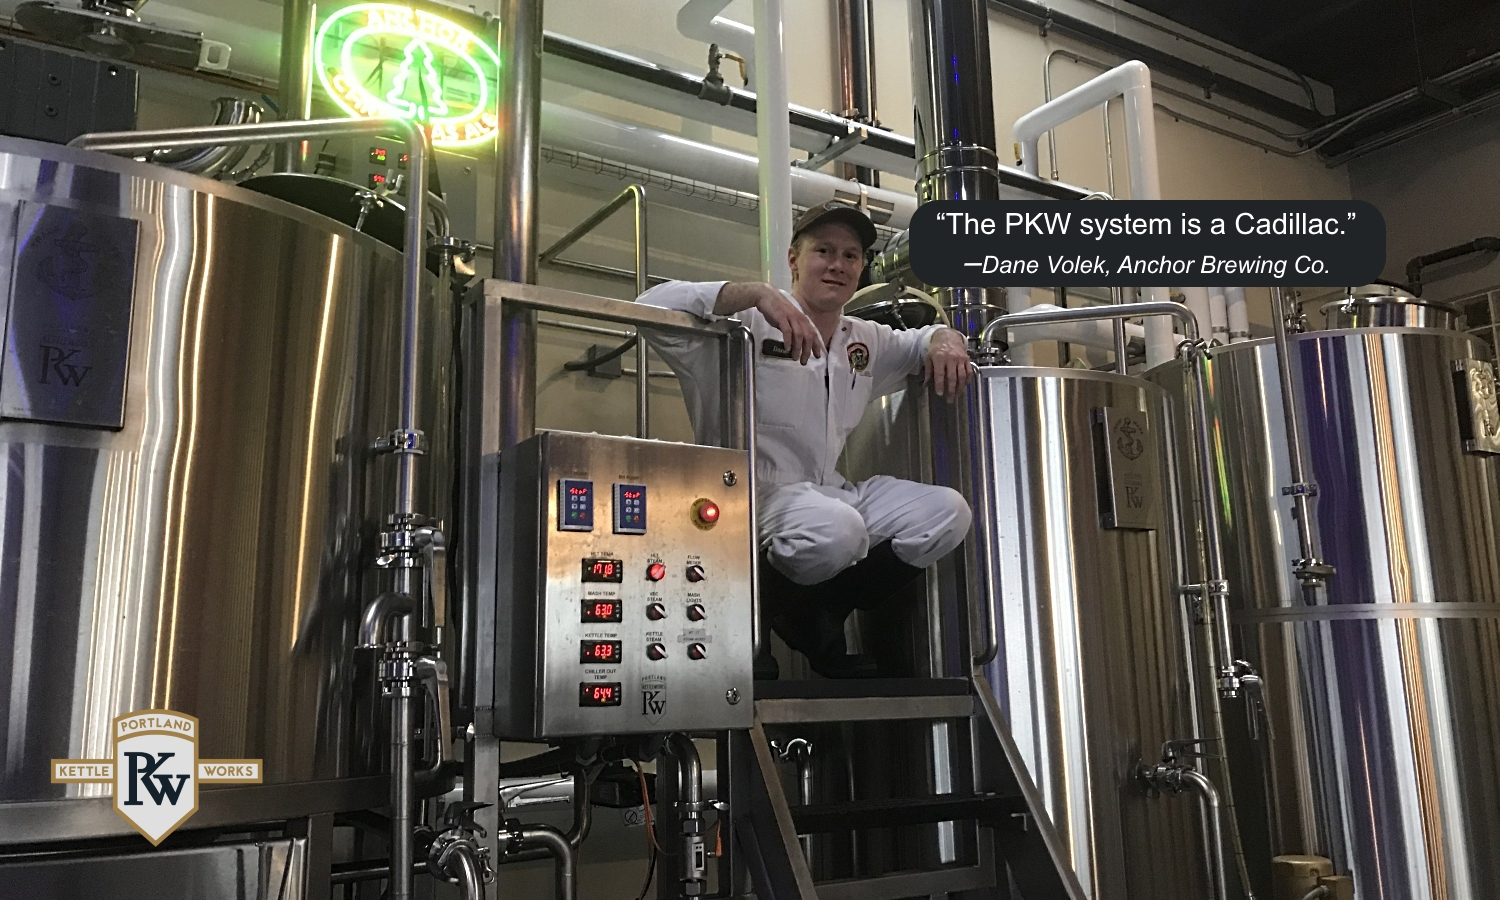 Brewing Equipment at Anchor Brewery & Client Testimonial